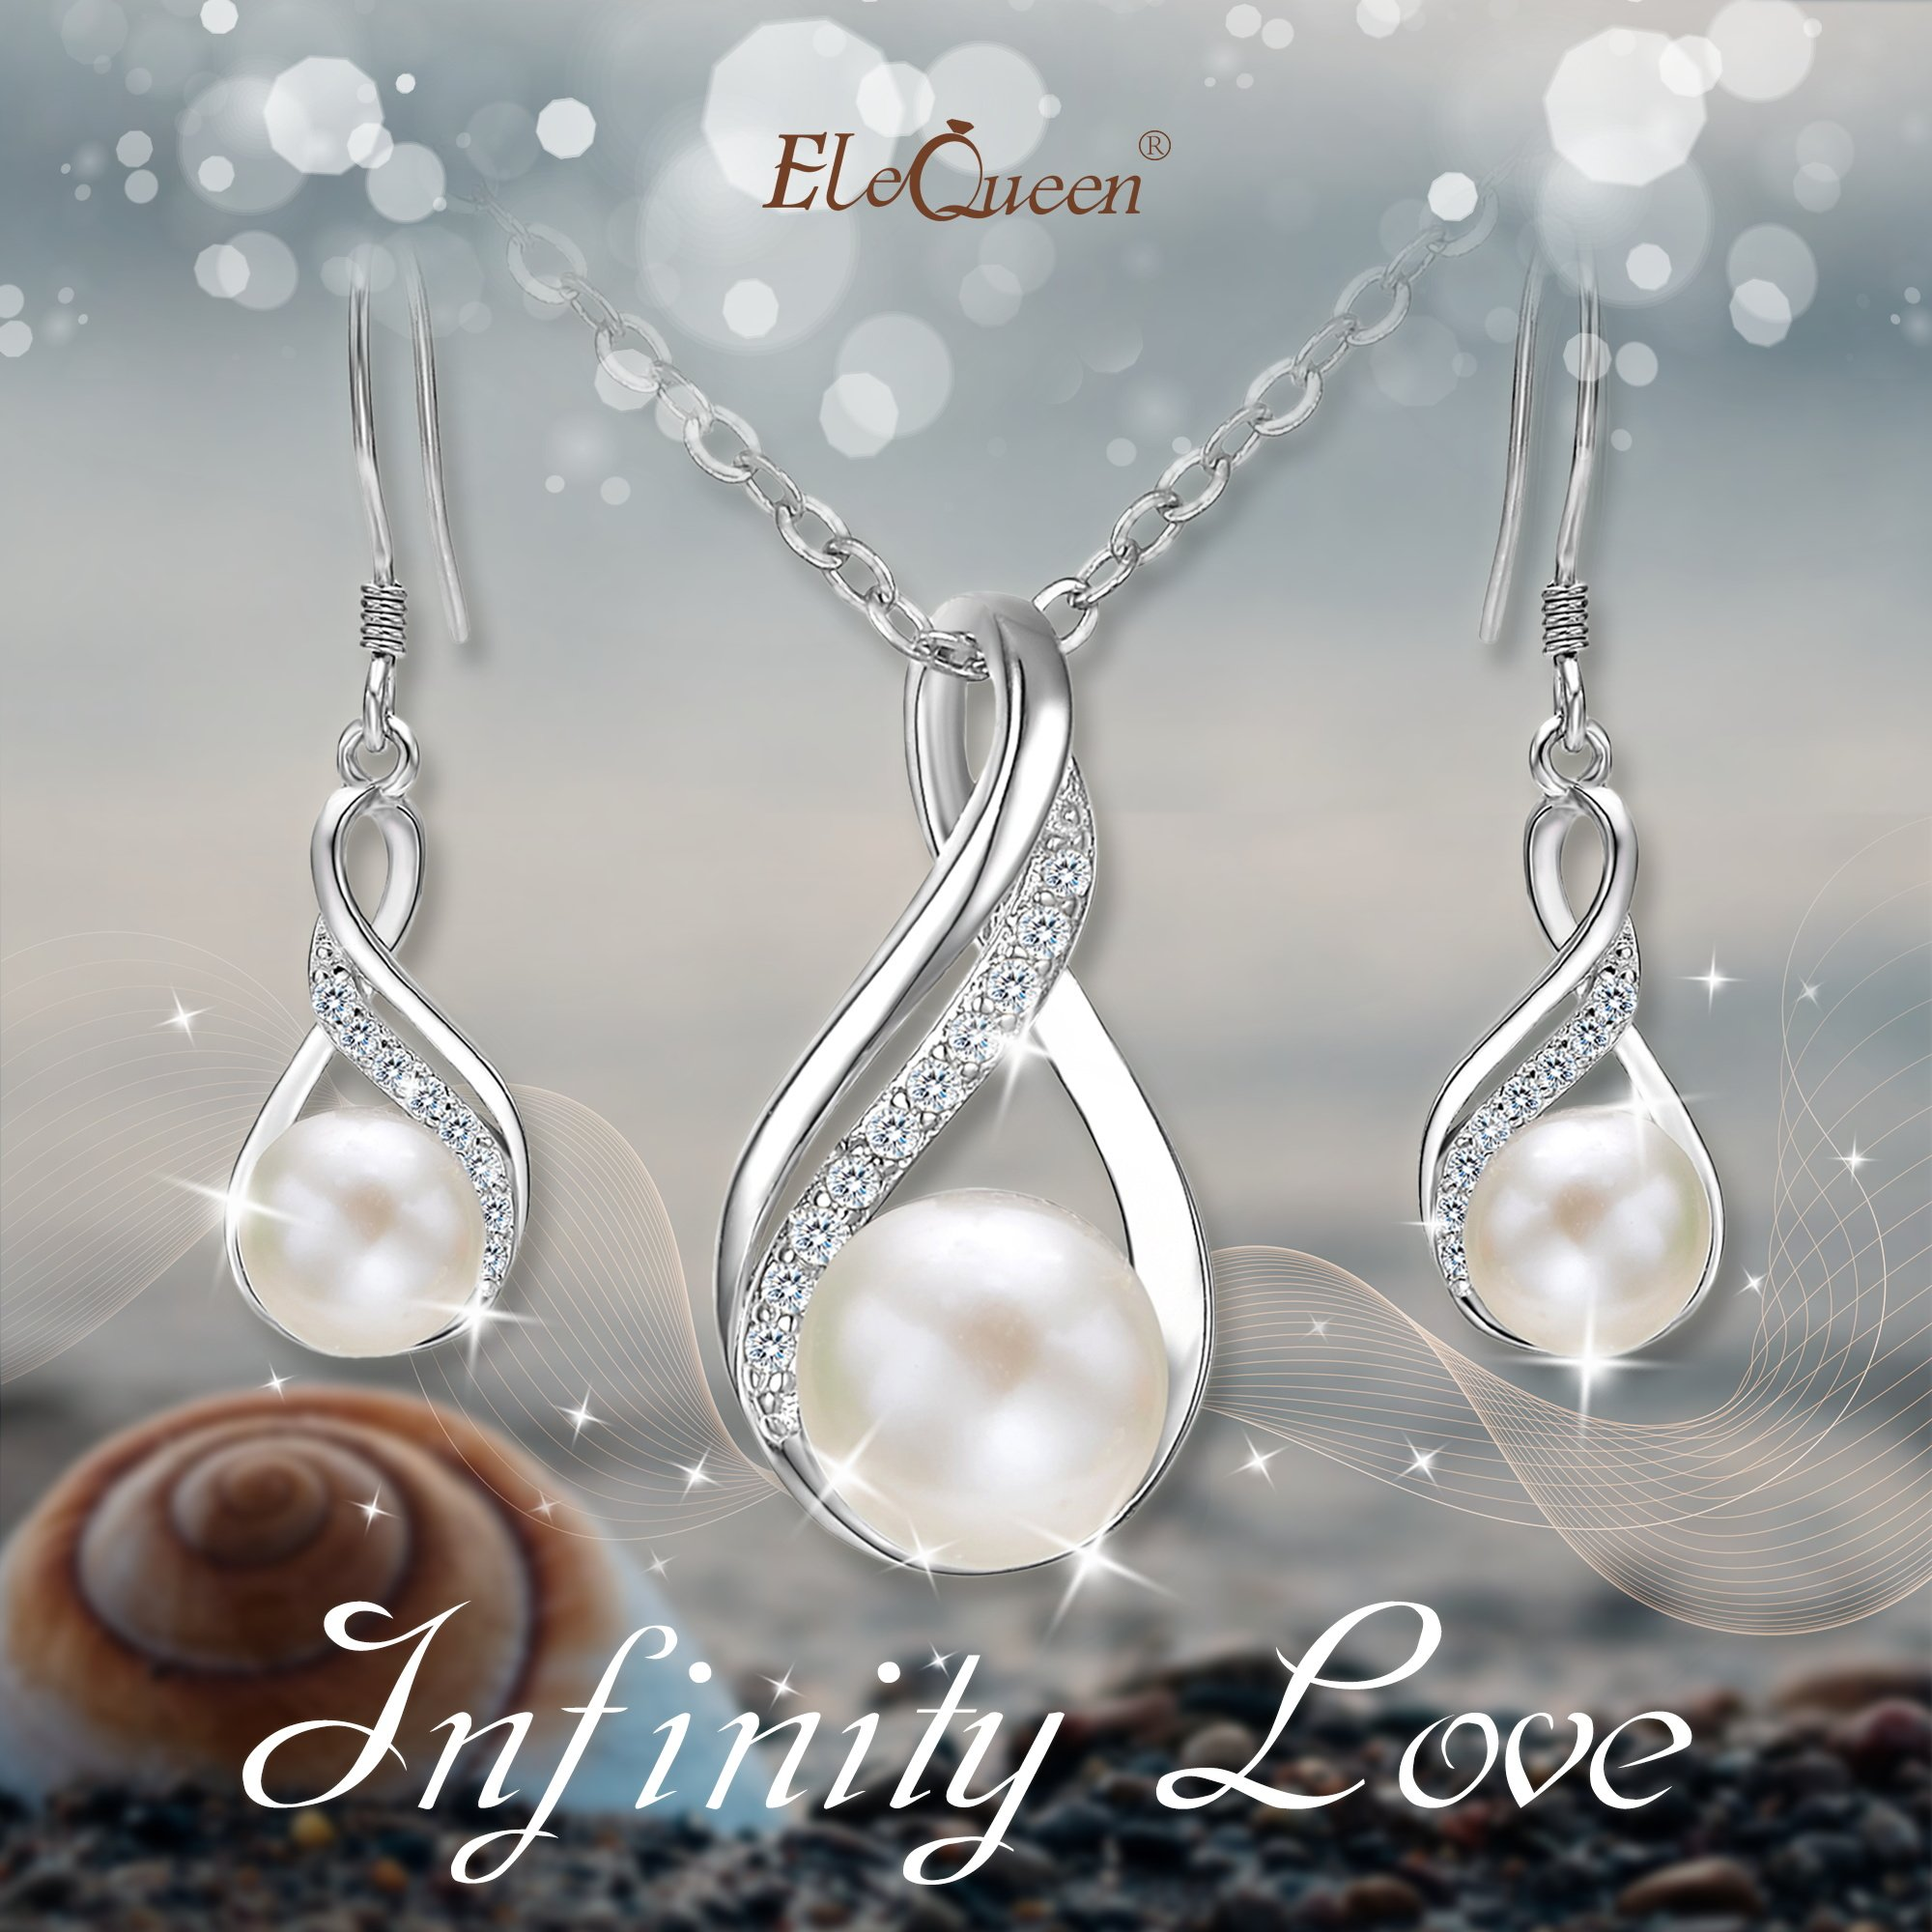 EleQueen 925 Sterling Silver CZ Cream Freshwater Cultured Pearl Infinity Bridal Necklace Hook Earrings Set Clear by EleQueen (Image #2)